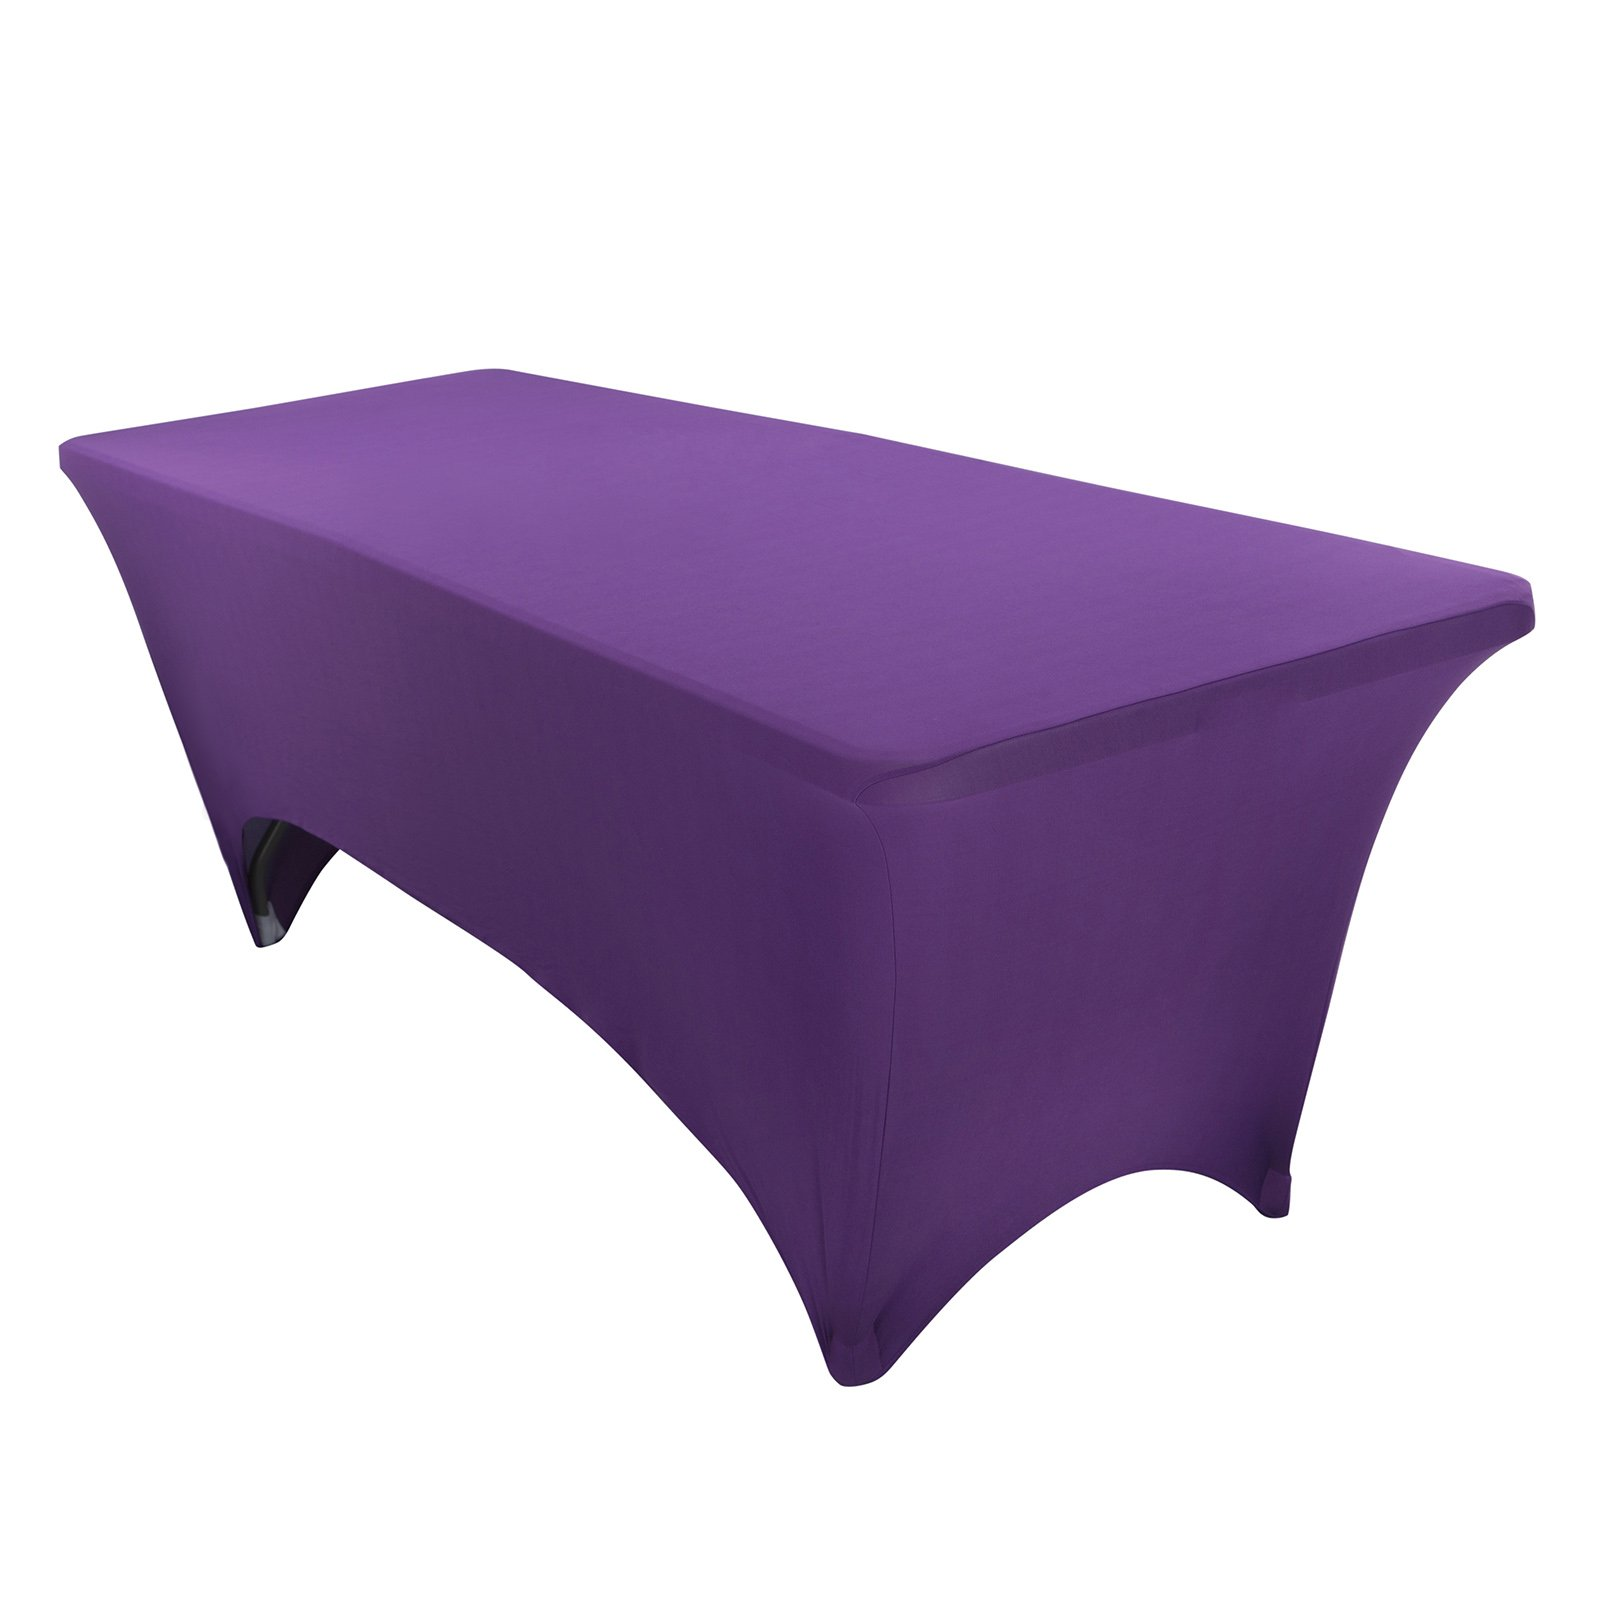 VEEYOO 6 Feet Rectangular Polyester/Spandex Stretch Table Cover Tight Fitted Tablecloth for Wedding Party Banquet Trade Show, Purple